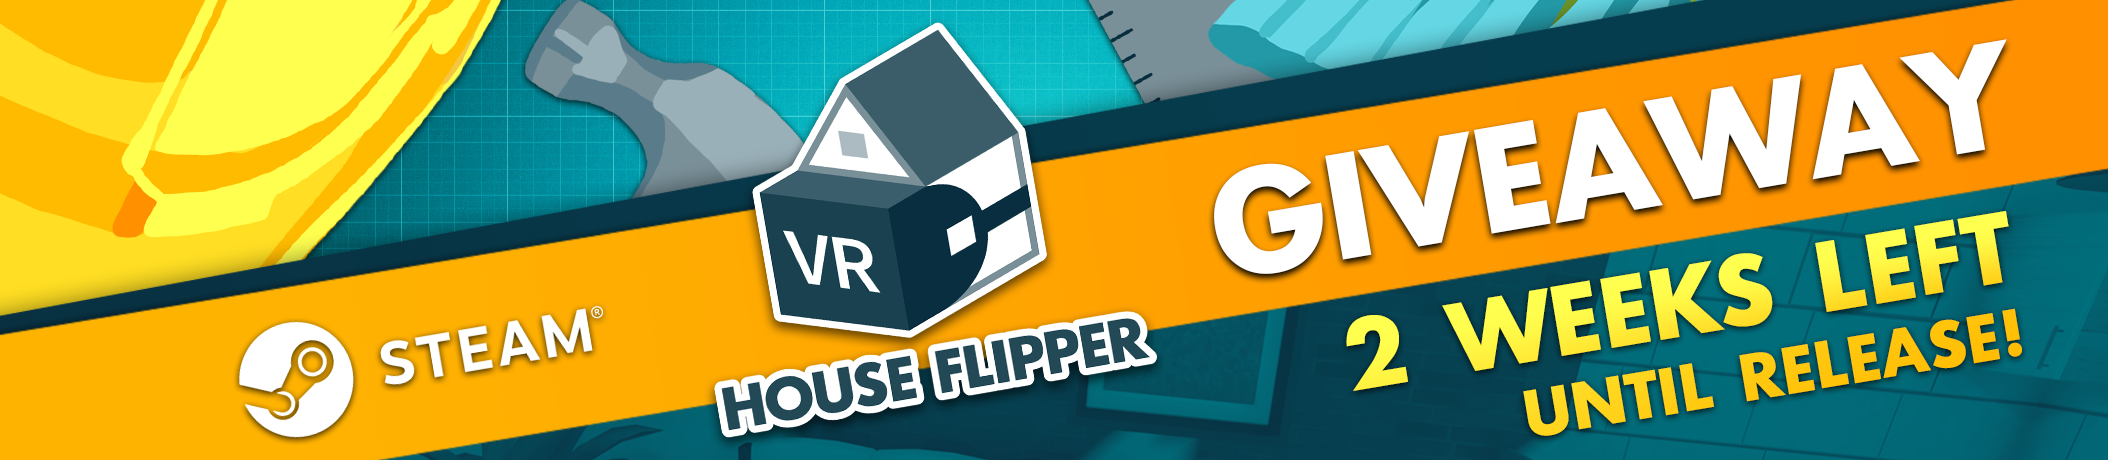 House Flipper VR arrives in 2 weeks! Giveaway time!